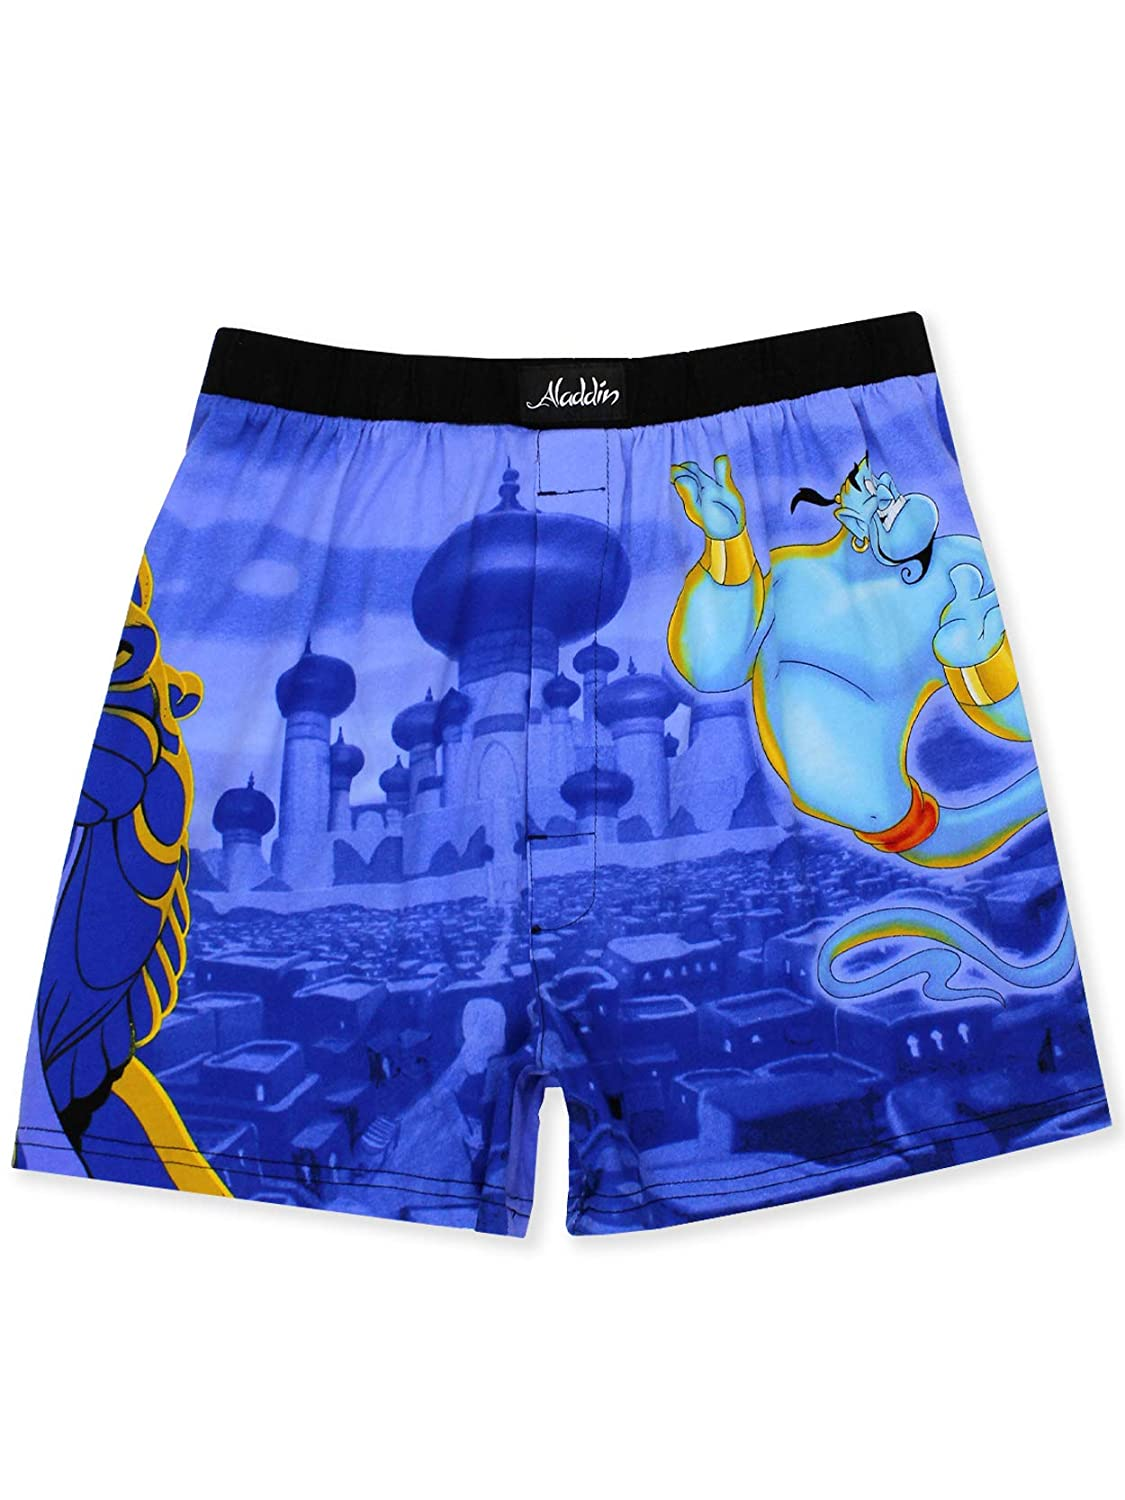 Disney Aladdin Genie Jafar Mens Briefly Stated Boxer Lounge Shorts